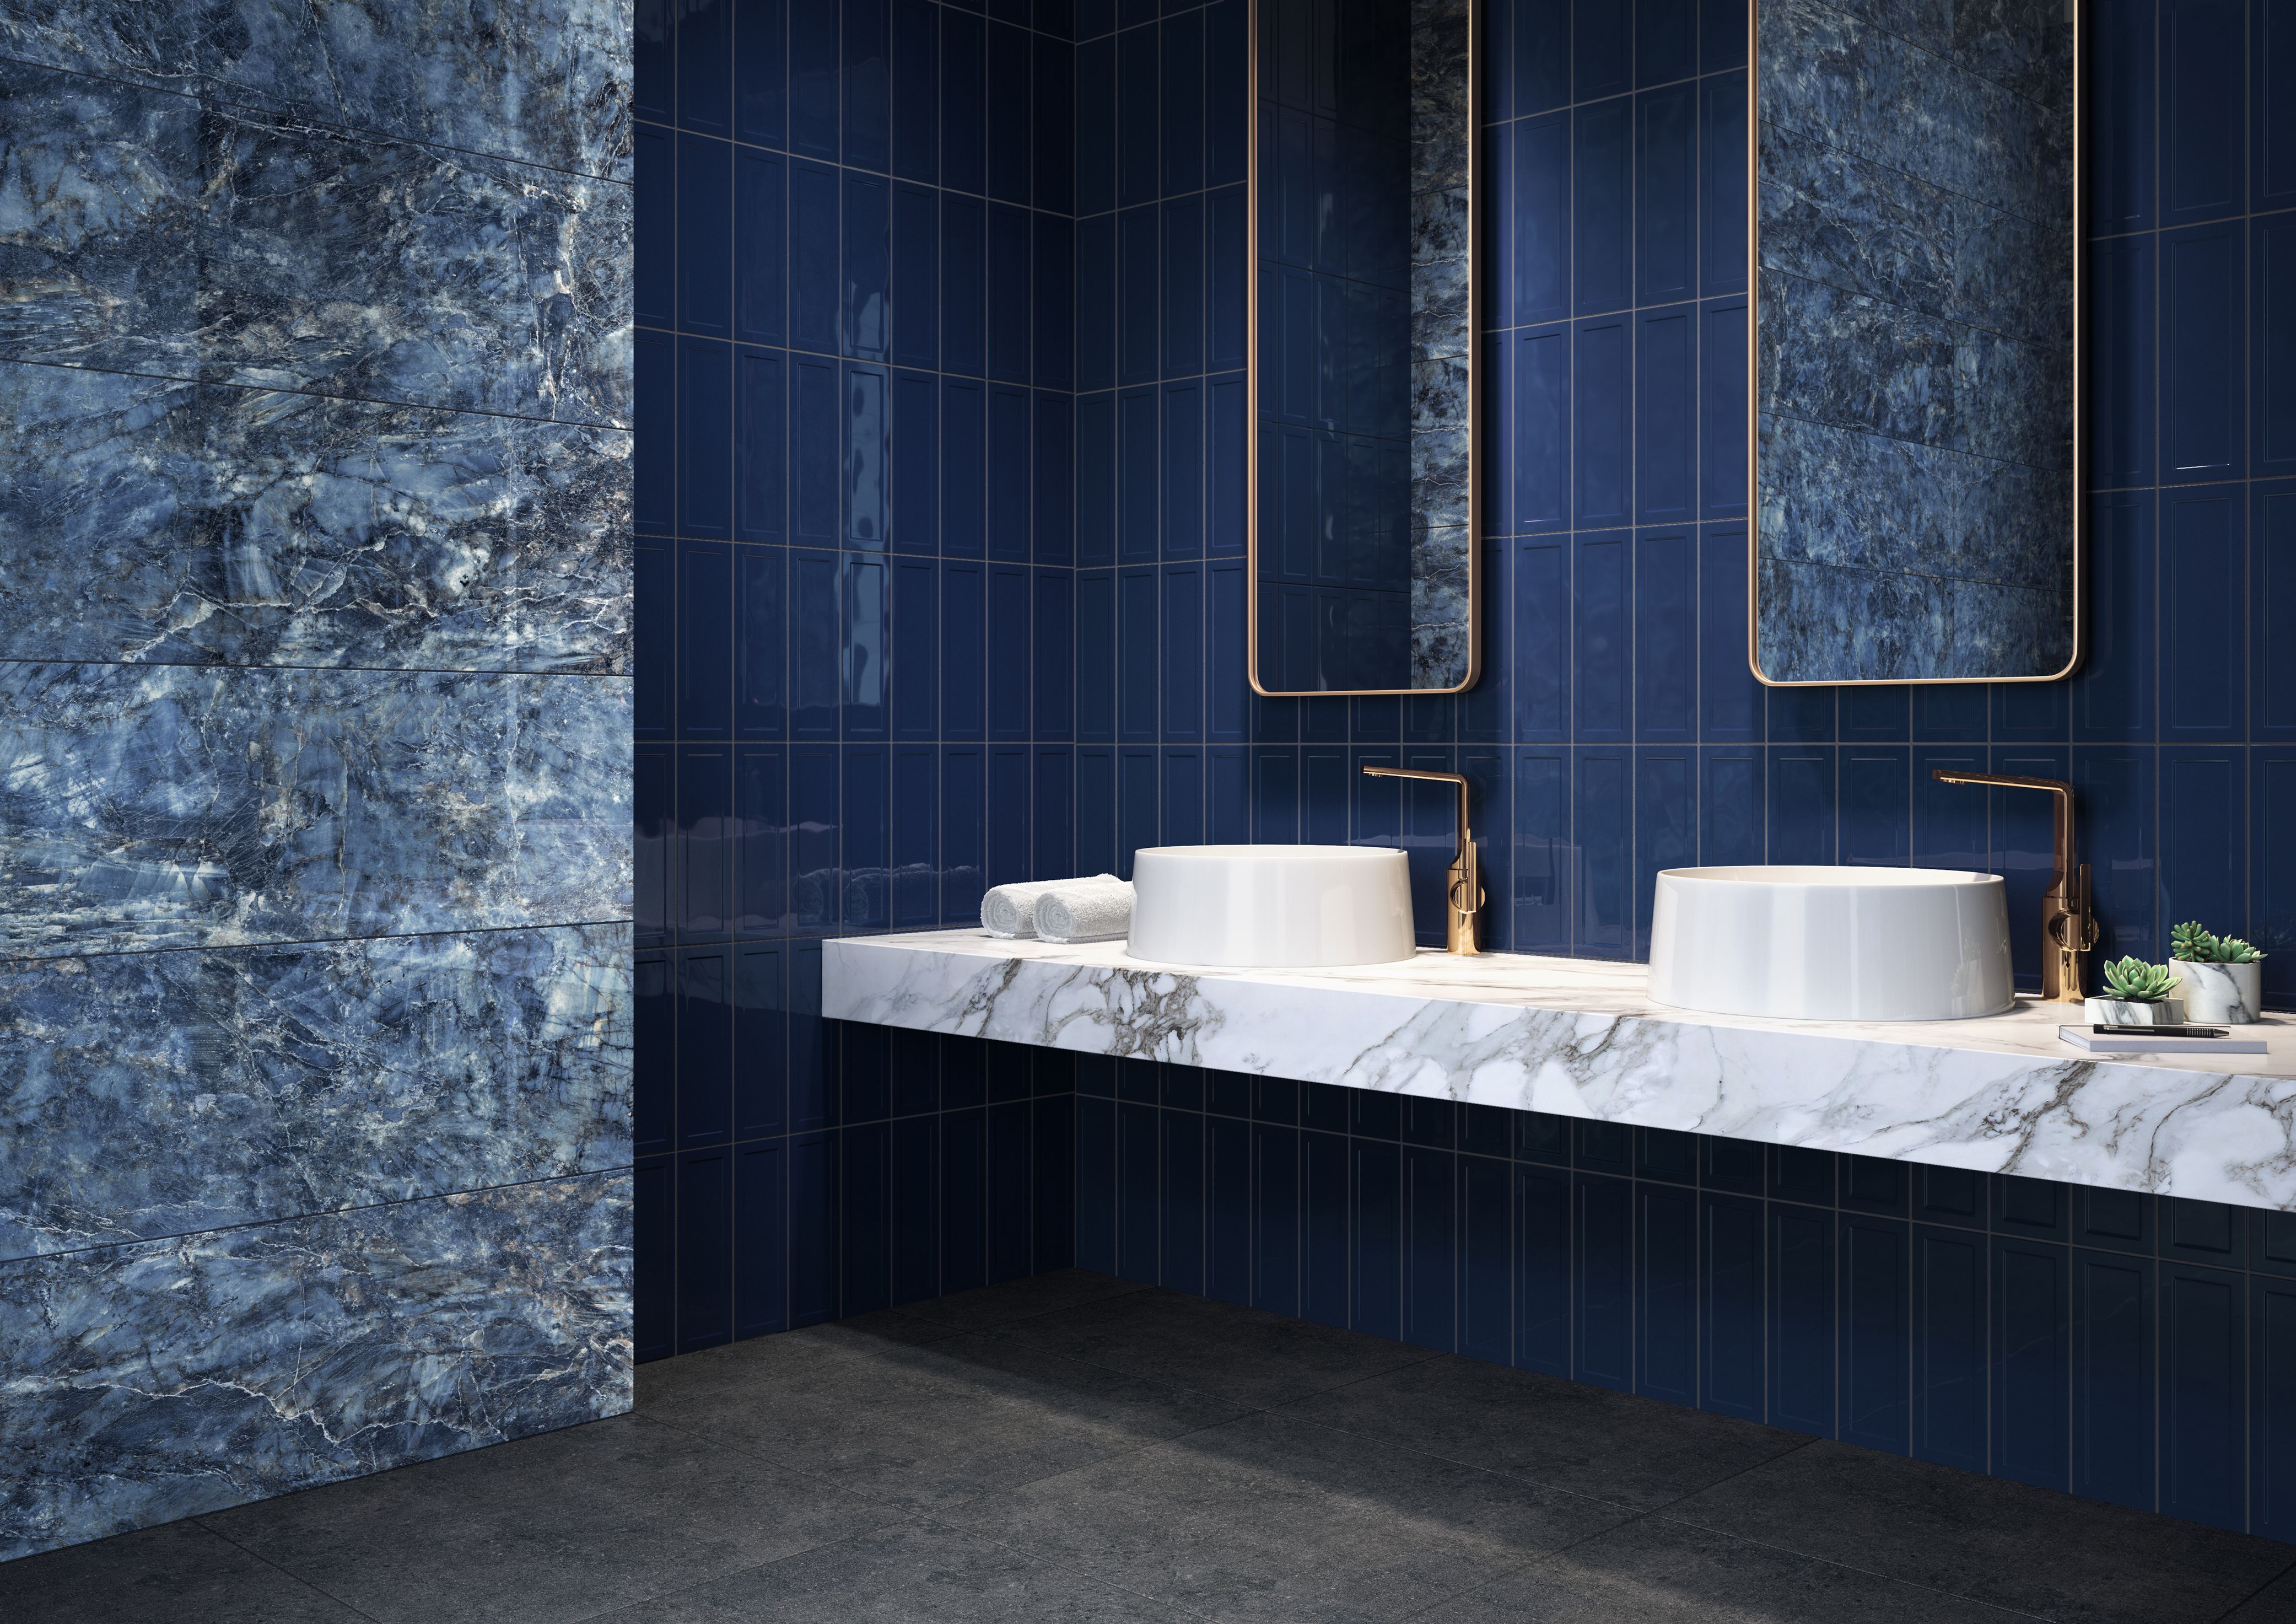 Homemade X Marble Vanity Countertop And Blue Tiles Brass Mirrors And Round Basins With Gold Taps Bathroom Vanity Designs Restroom Design Bathroom Design Luxury